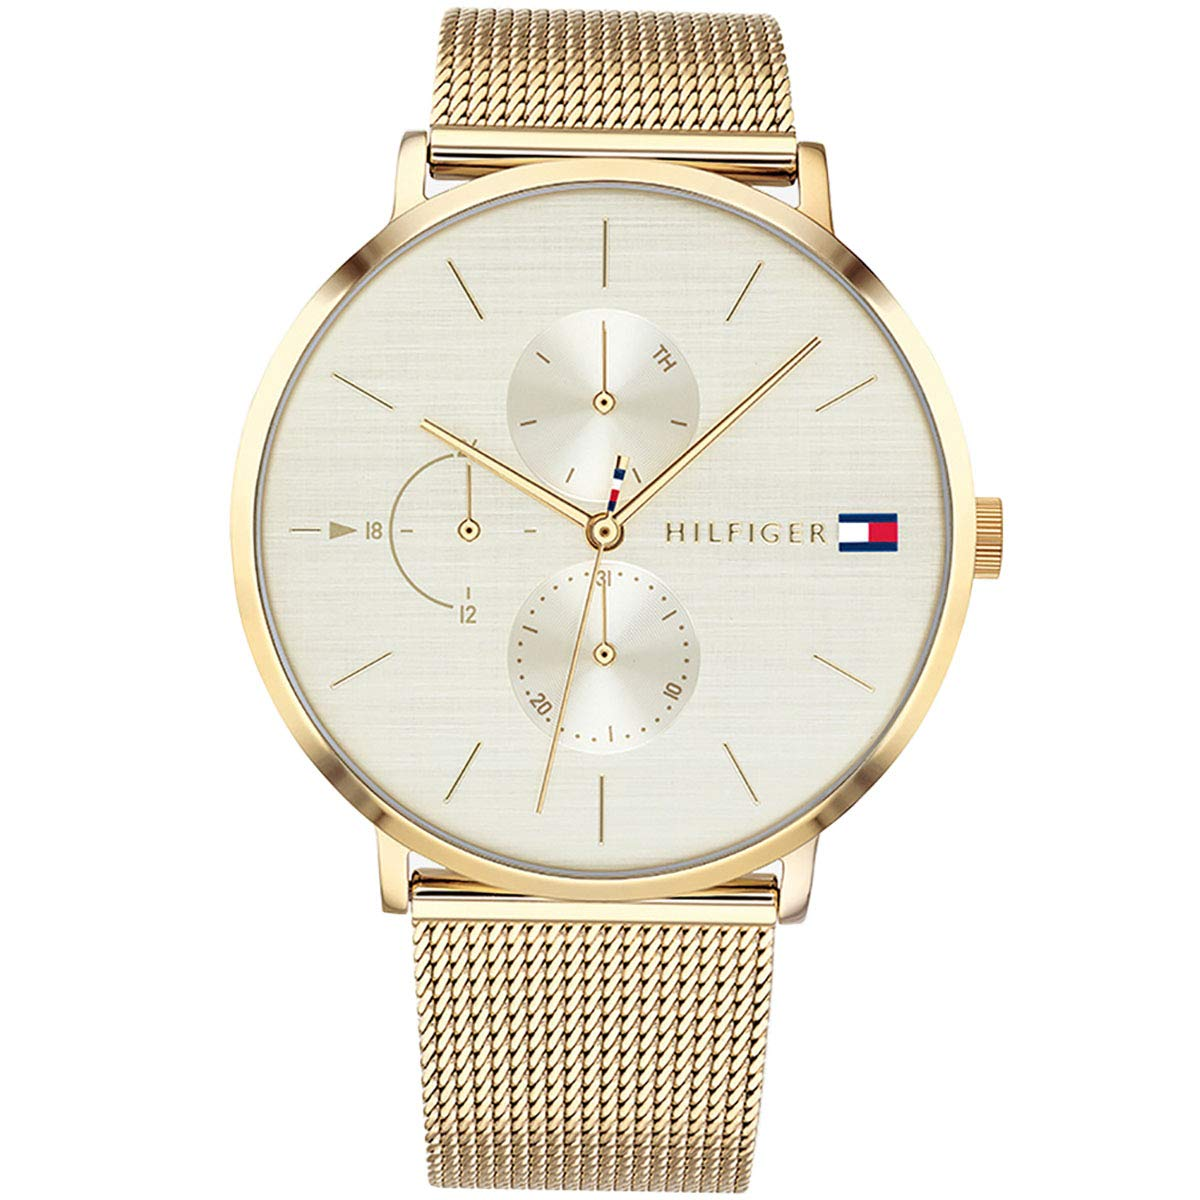 Amazon.com: 1781943 Tommy Hilfiger Jenna Ladies Analog White Sport Quartz Tommy Hilfiger: Watches